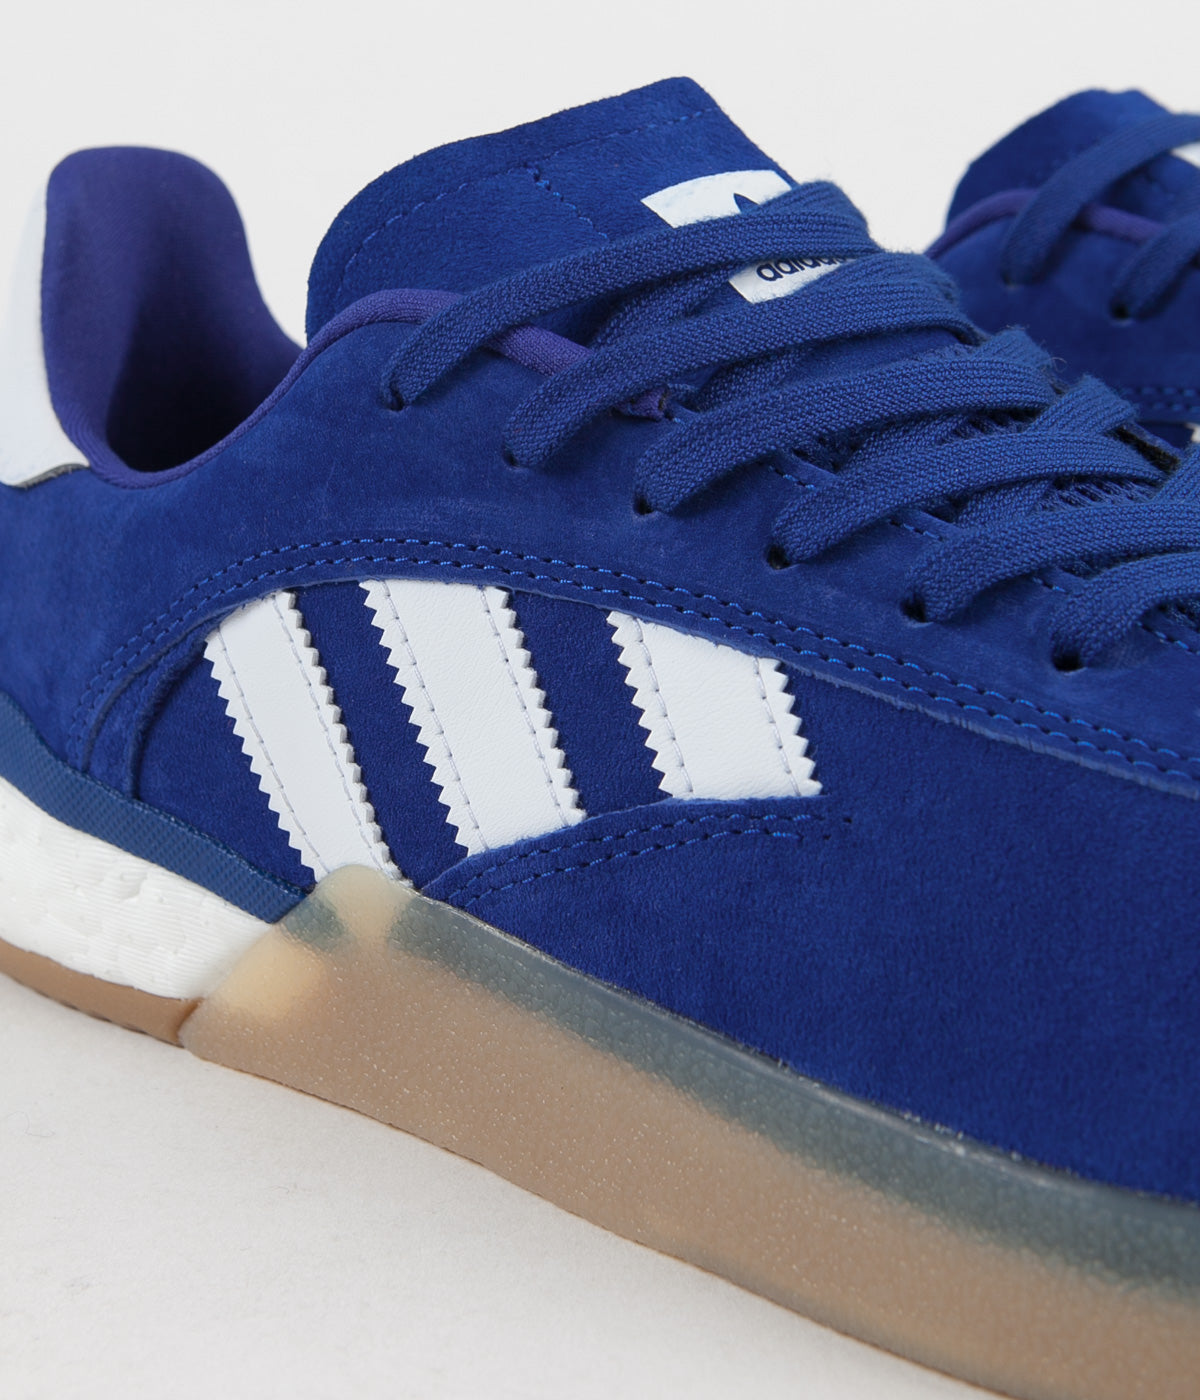 Adidas 3ST.004 Shoes - Collegiate Royal / White / Antique Silver